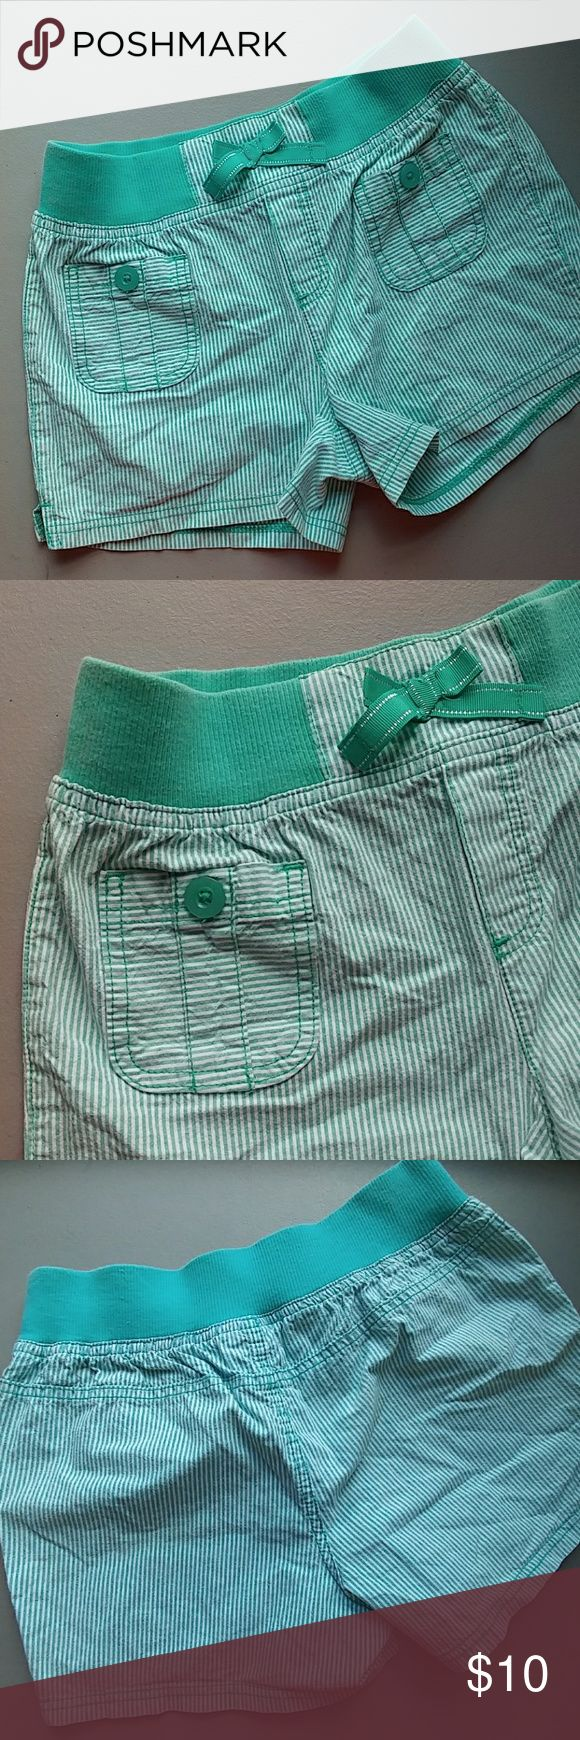 Girls XL(14-16) shorts Mint Green and white striped fun shorts from Basic Editions Bottoms Shorts